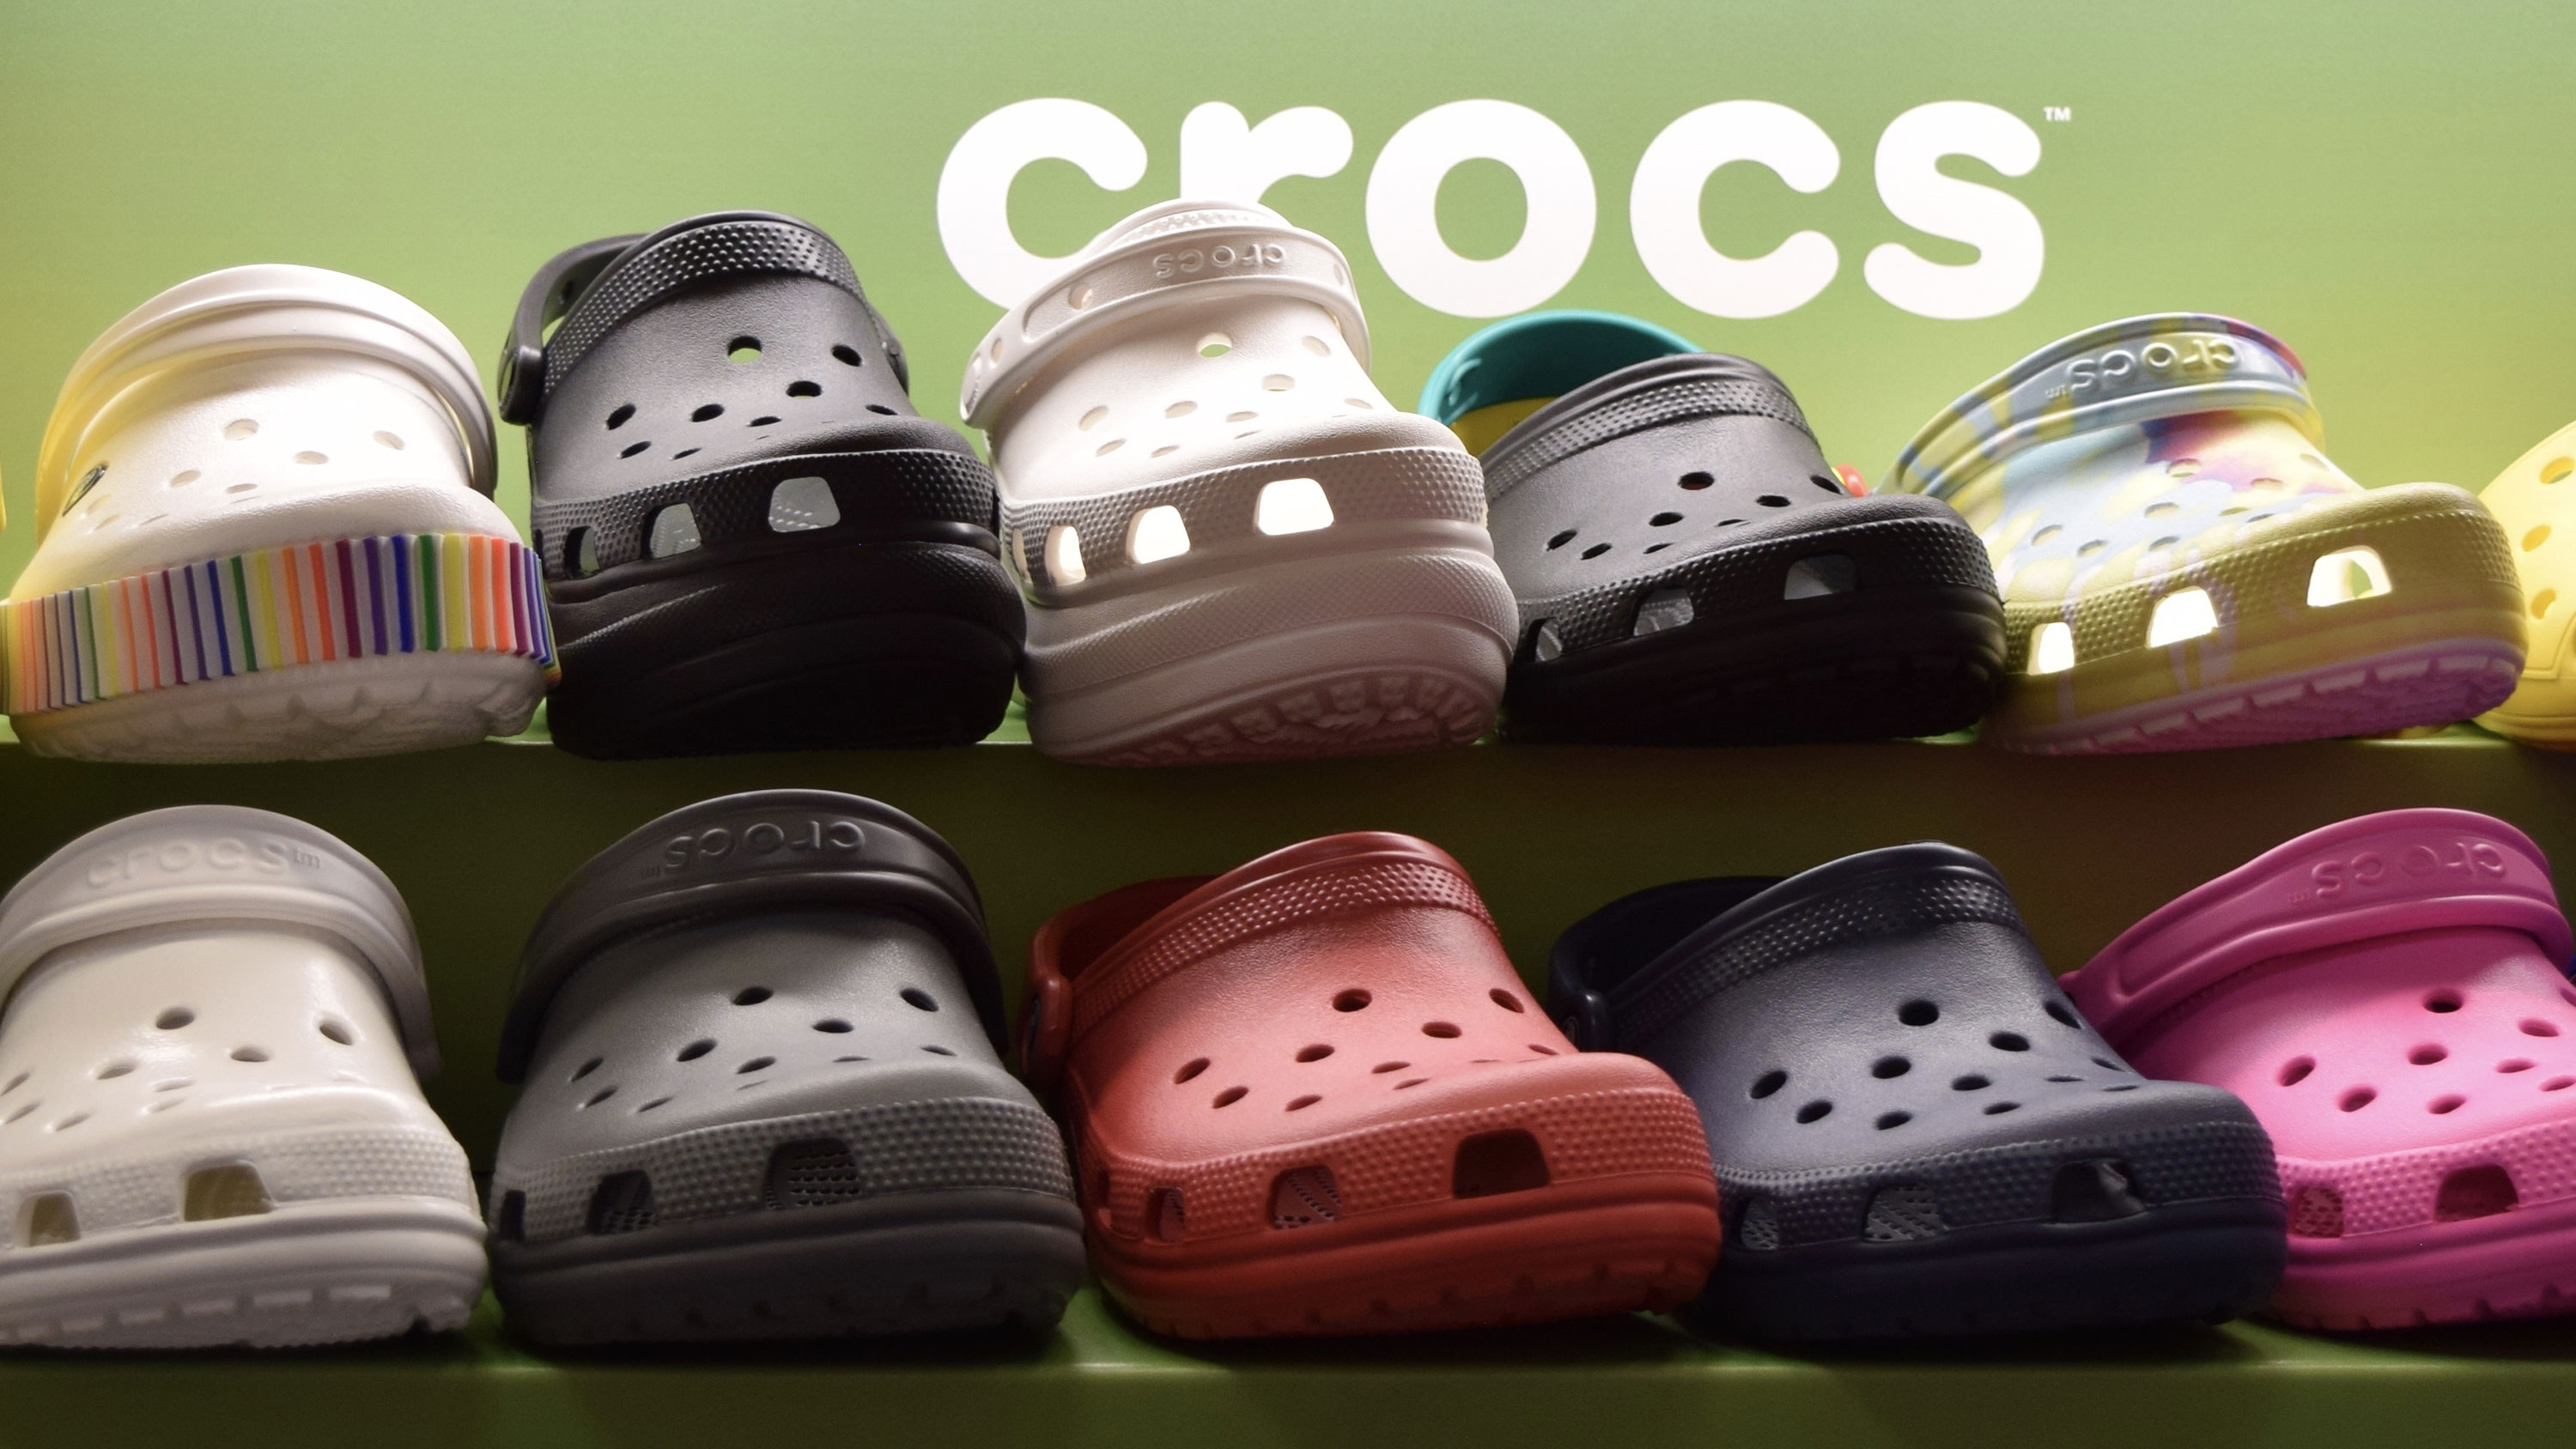 Crocs is once again donating its shoes to healthcare workers